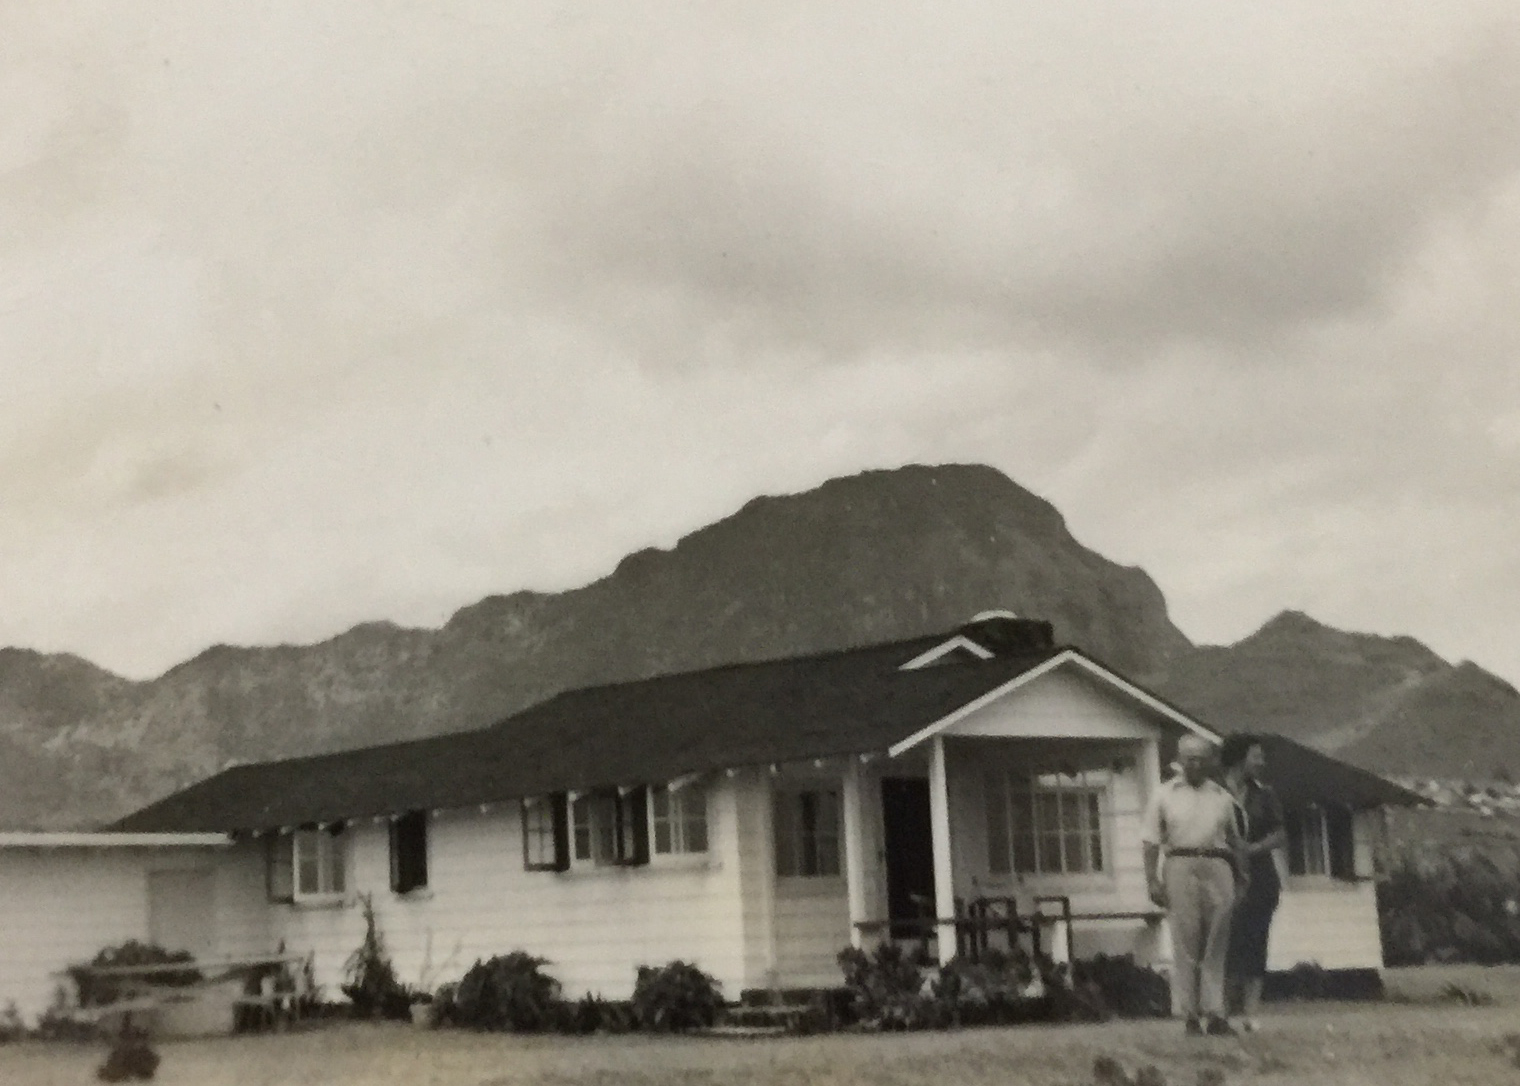 Elbert and his wife in front of the original Gillin House, circa 1951